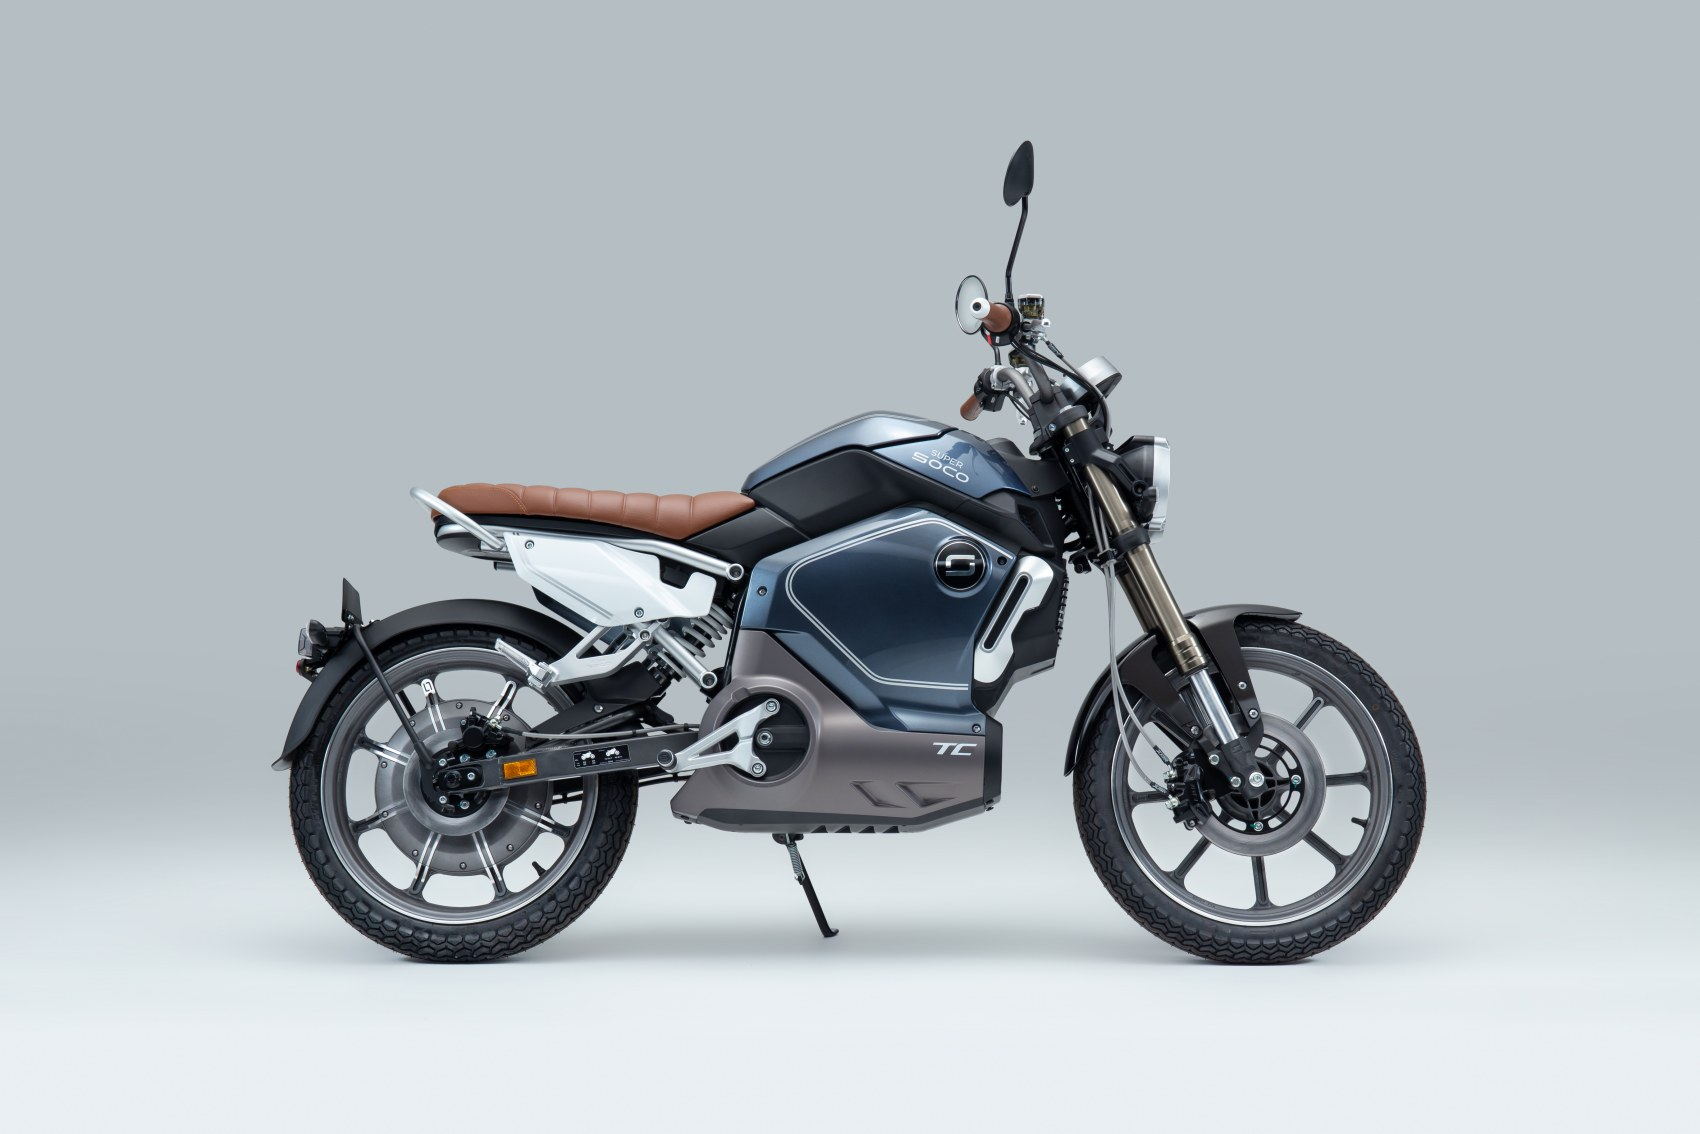 Super Soco TC electric motorcycle side profile image